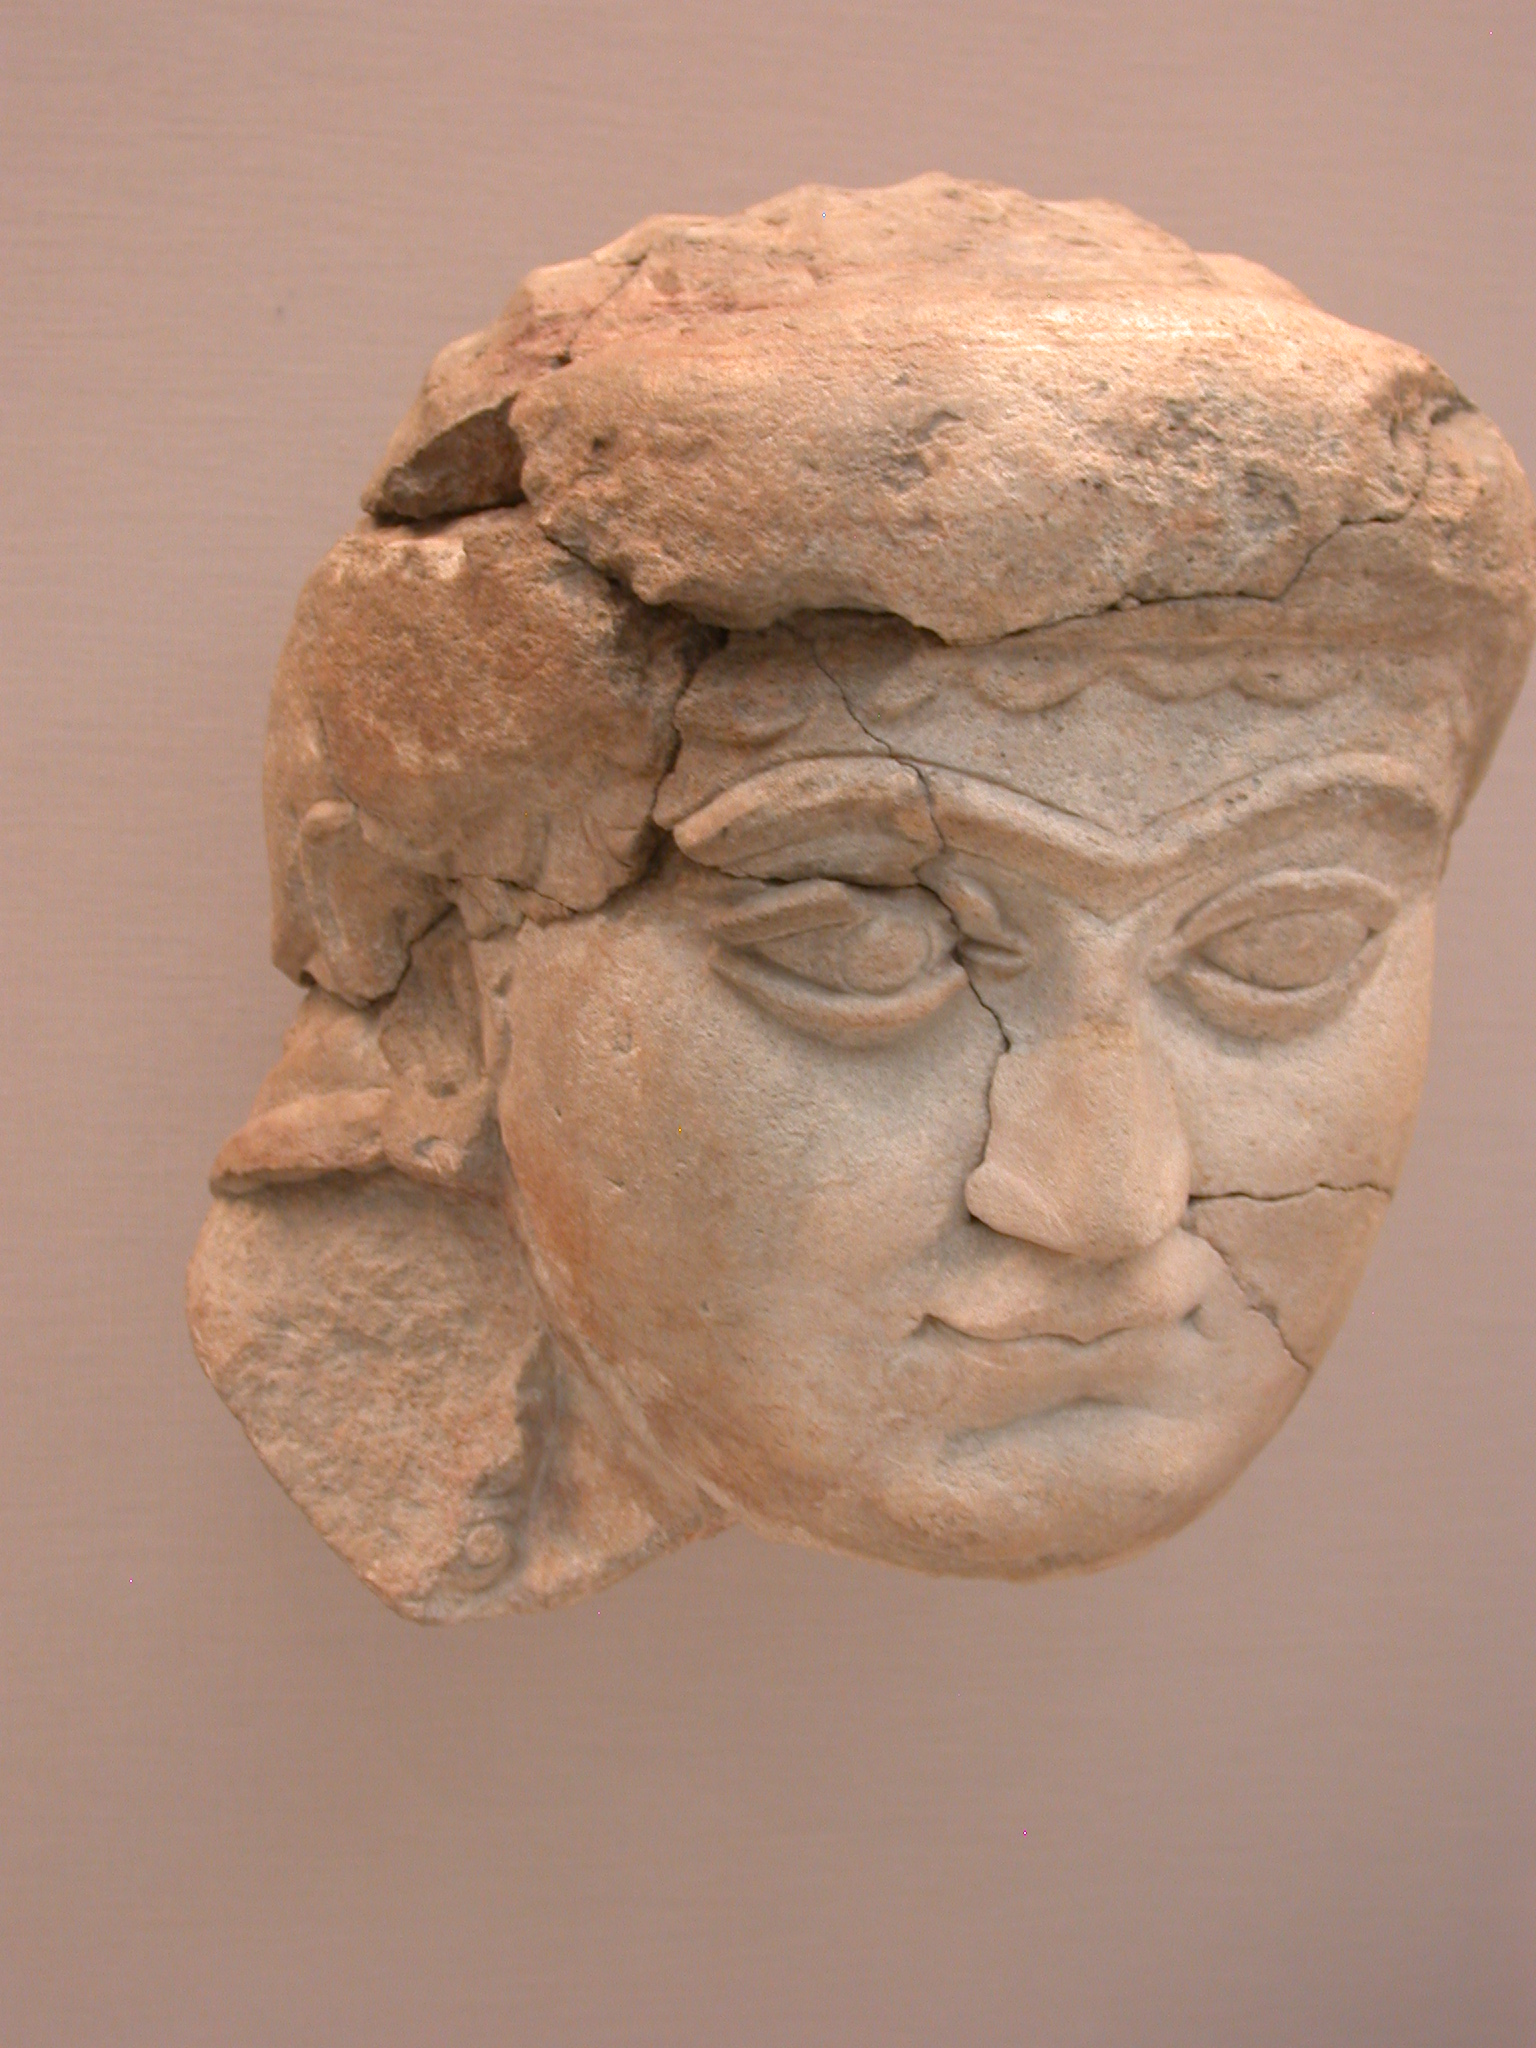 Head of a Woman, Gypsum Wall Panel, About 700-625 BCE, Probably Nineveh, Assyria, in British Museum, London, England